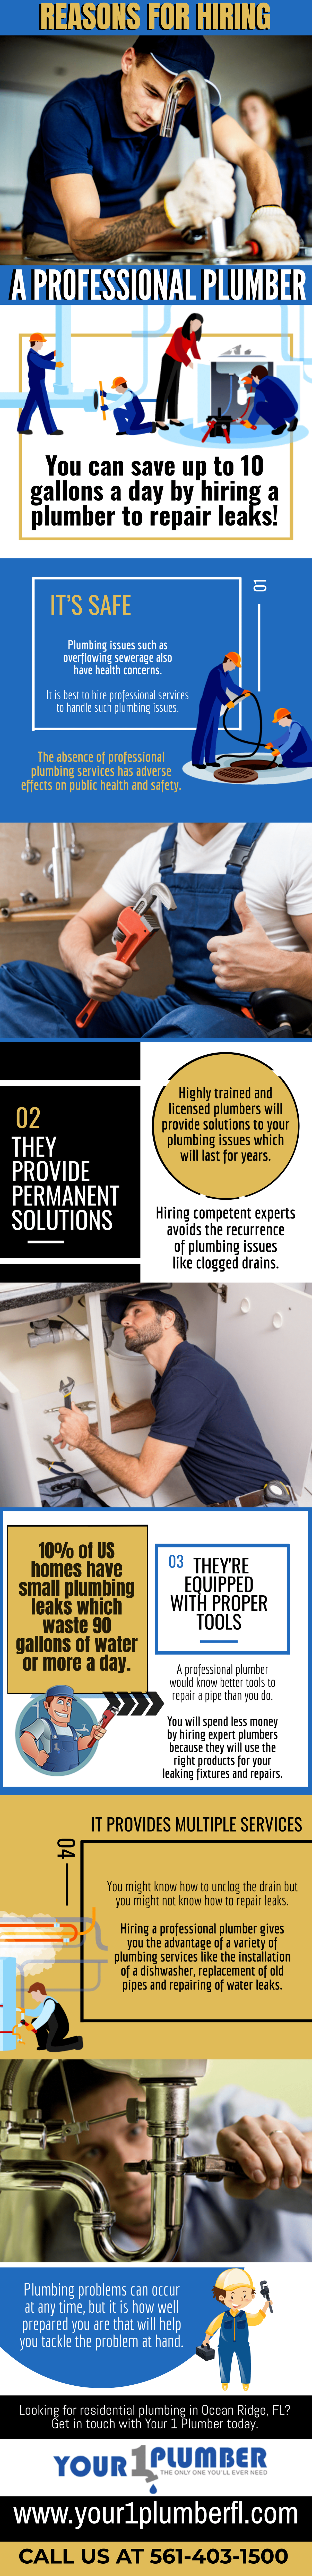 reasons-for-hiring-a-professional-plumber-min